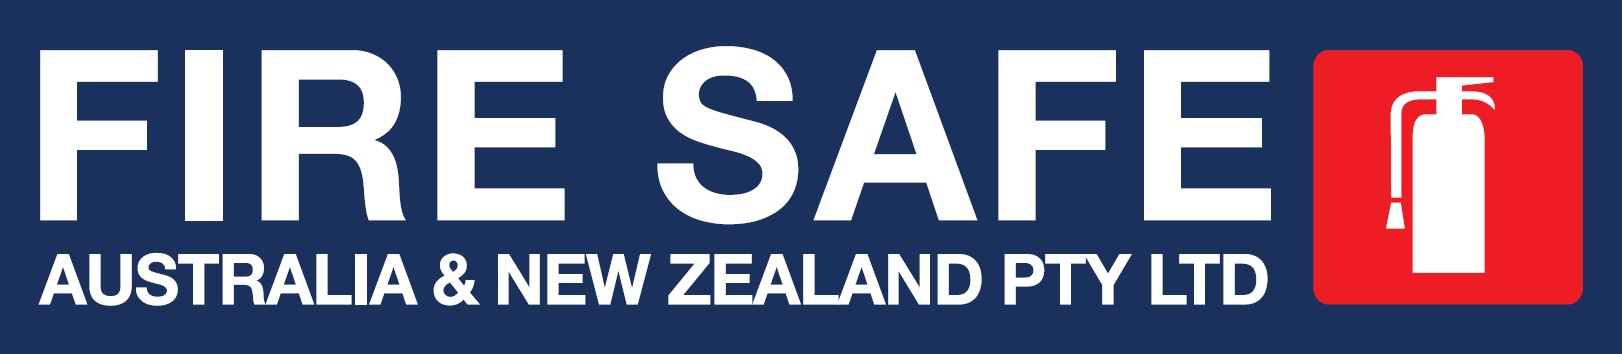 Fire Safe Australia & New Zealand